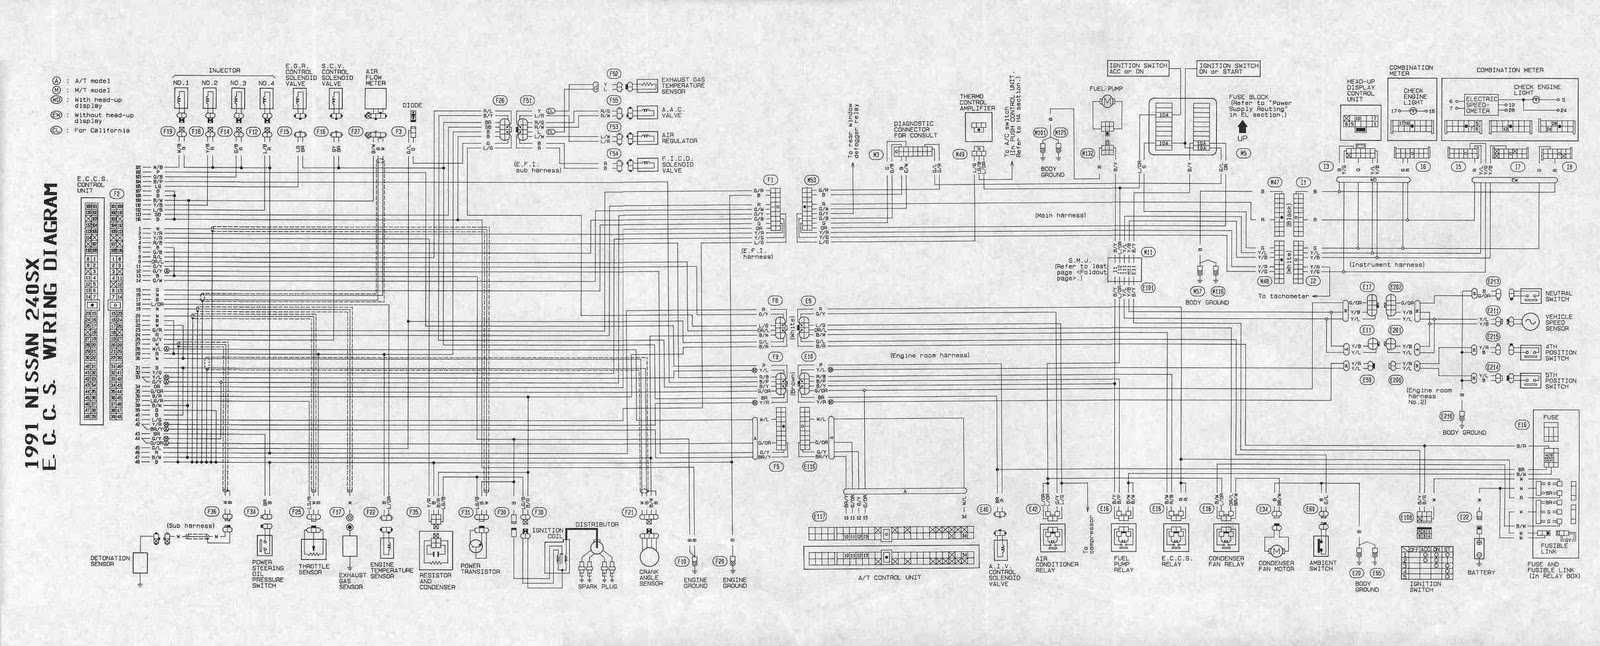 nissan 240sx 1991 eccs wiring diagram all about wiring 240SX Wiring Harness 240sx wiring diagrams